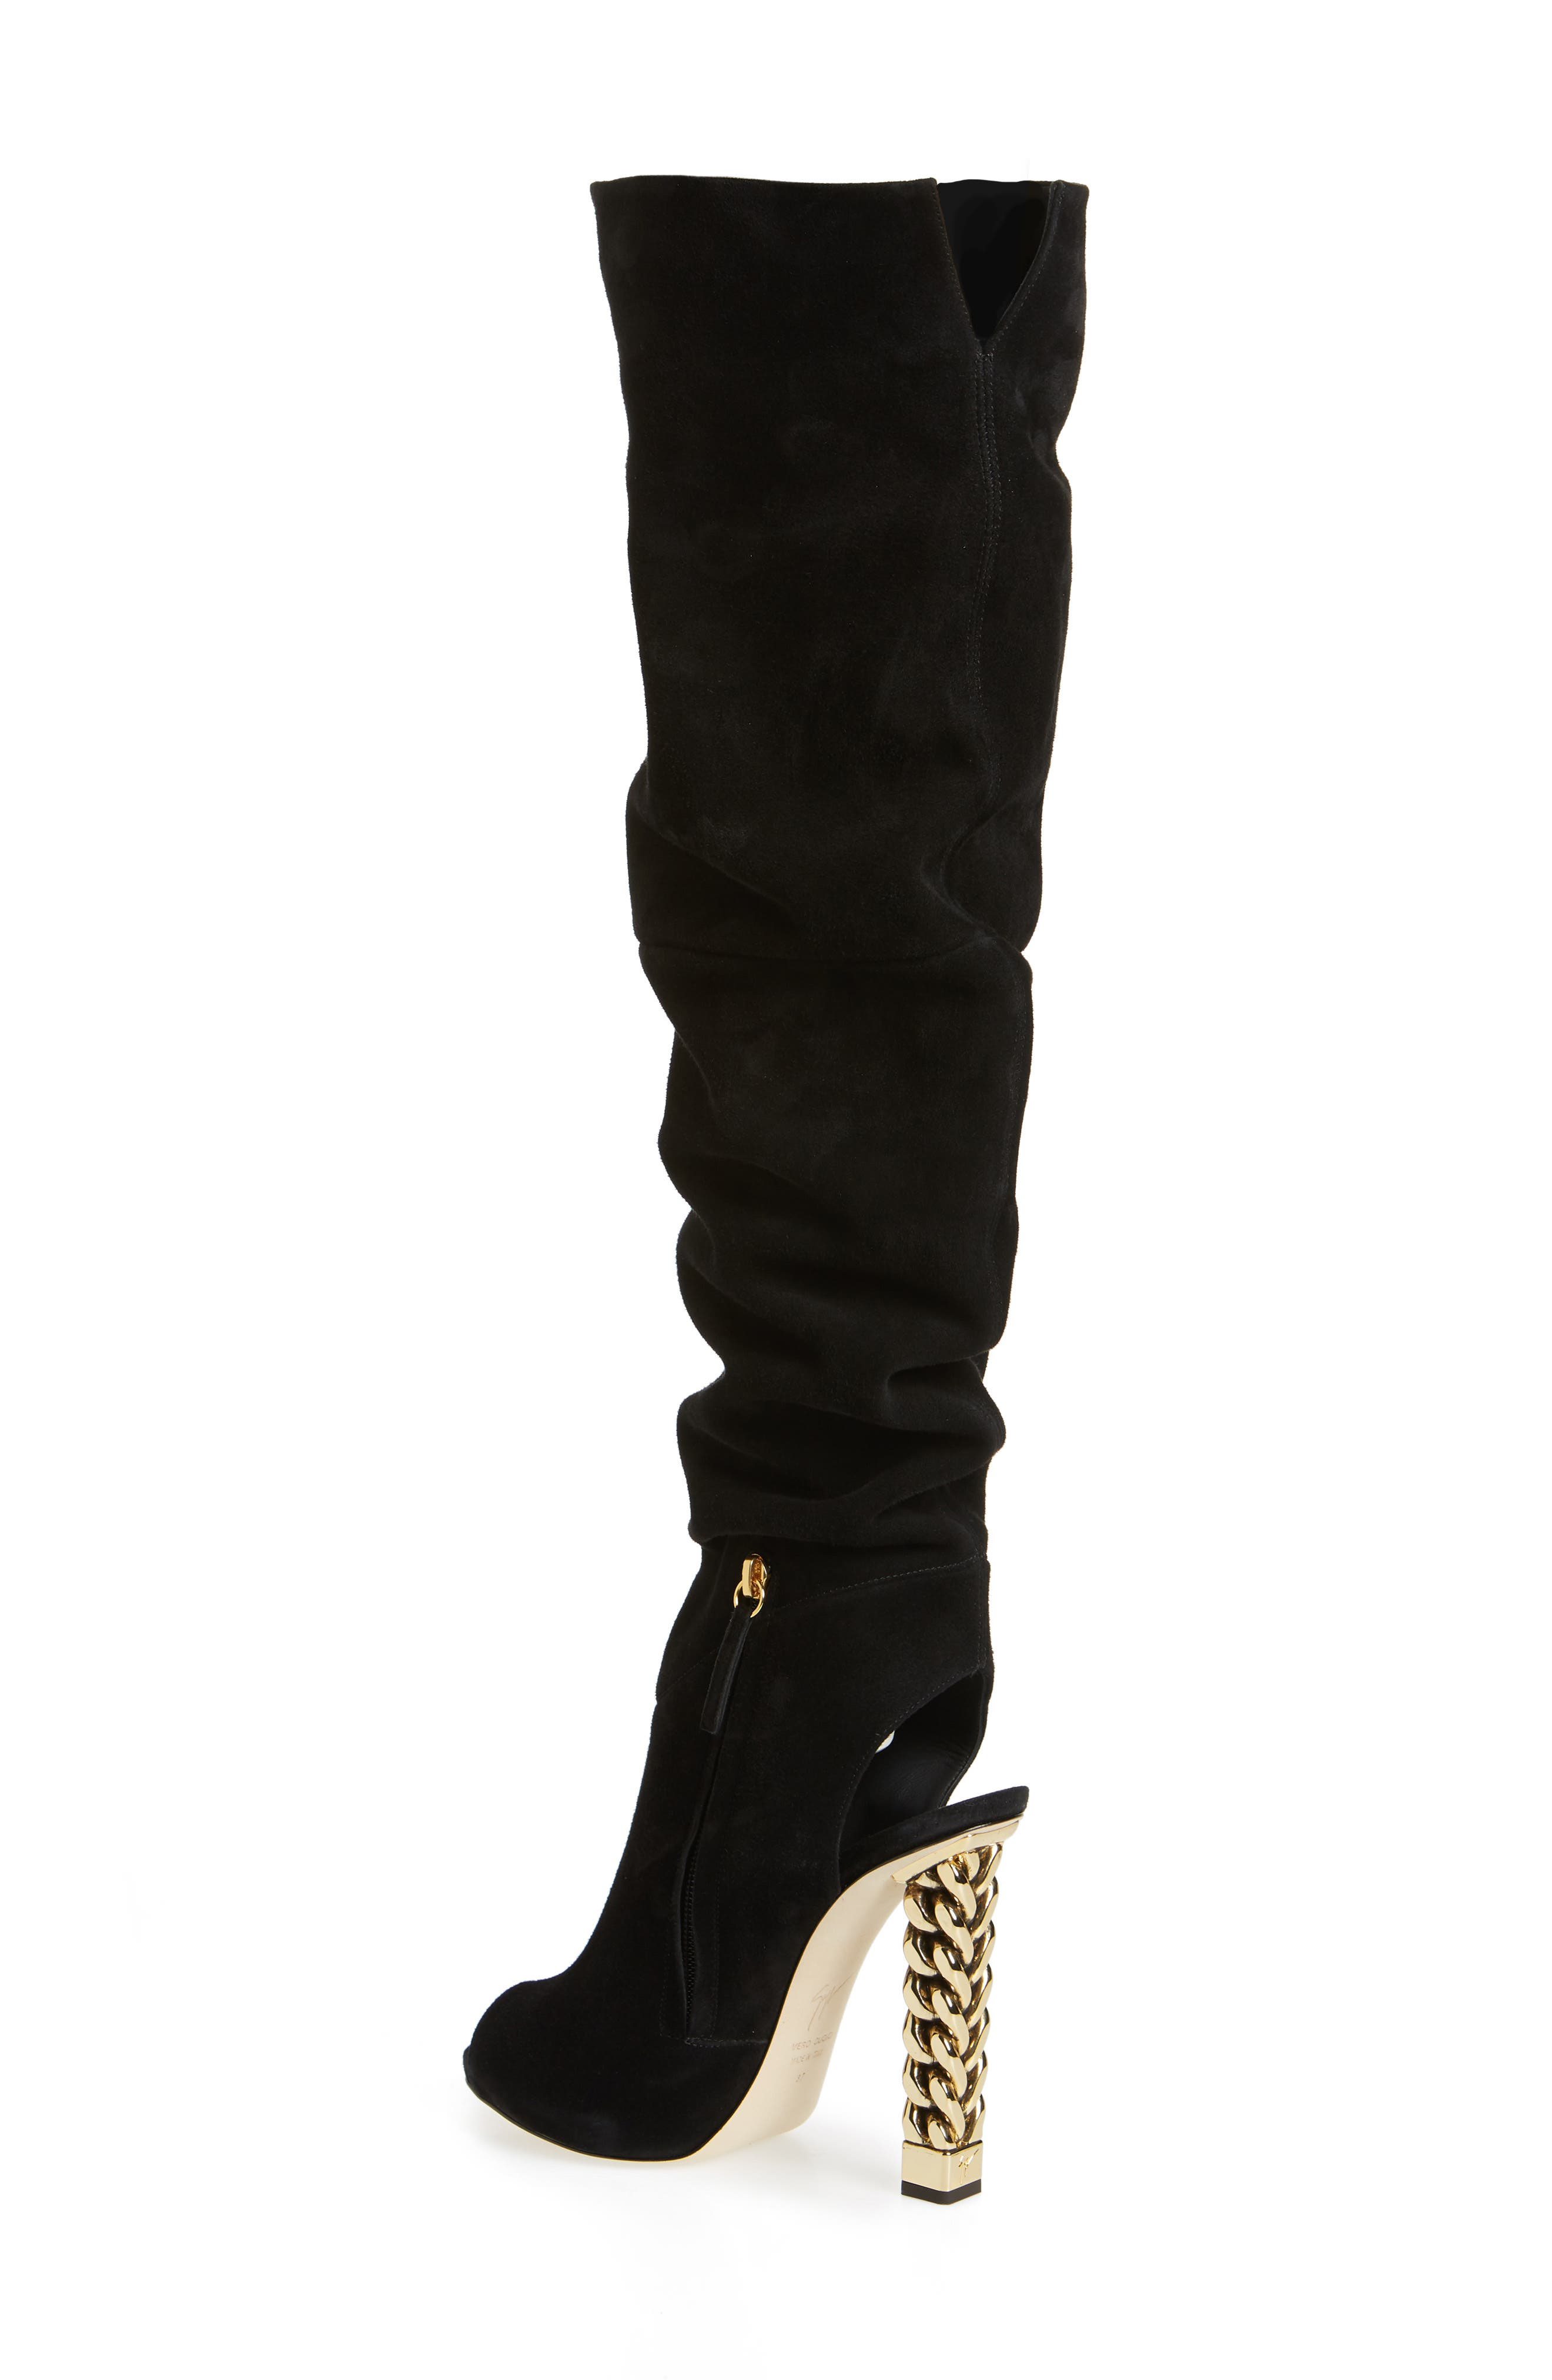 x Rita Ora Chain Heel Over the Knee Boot,                             Alternate thumbnail 2, color,                             BLACK